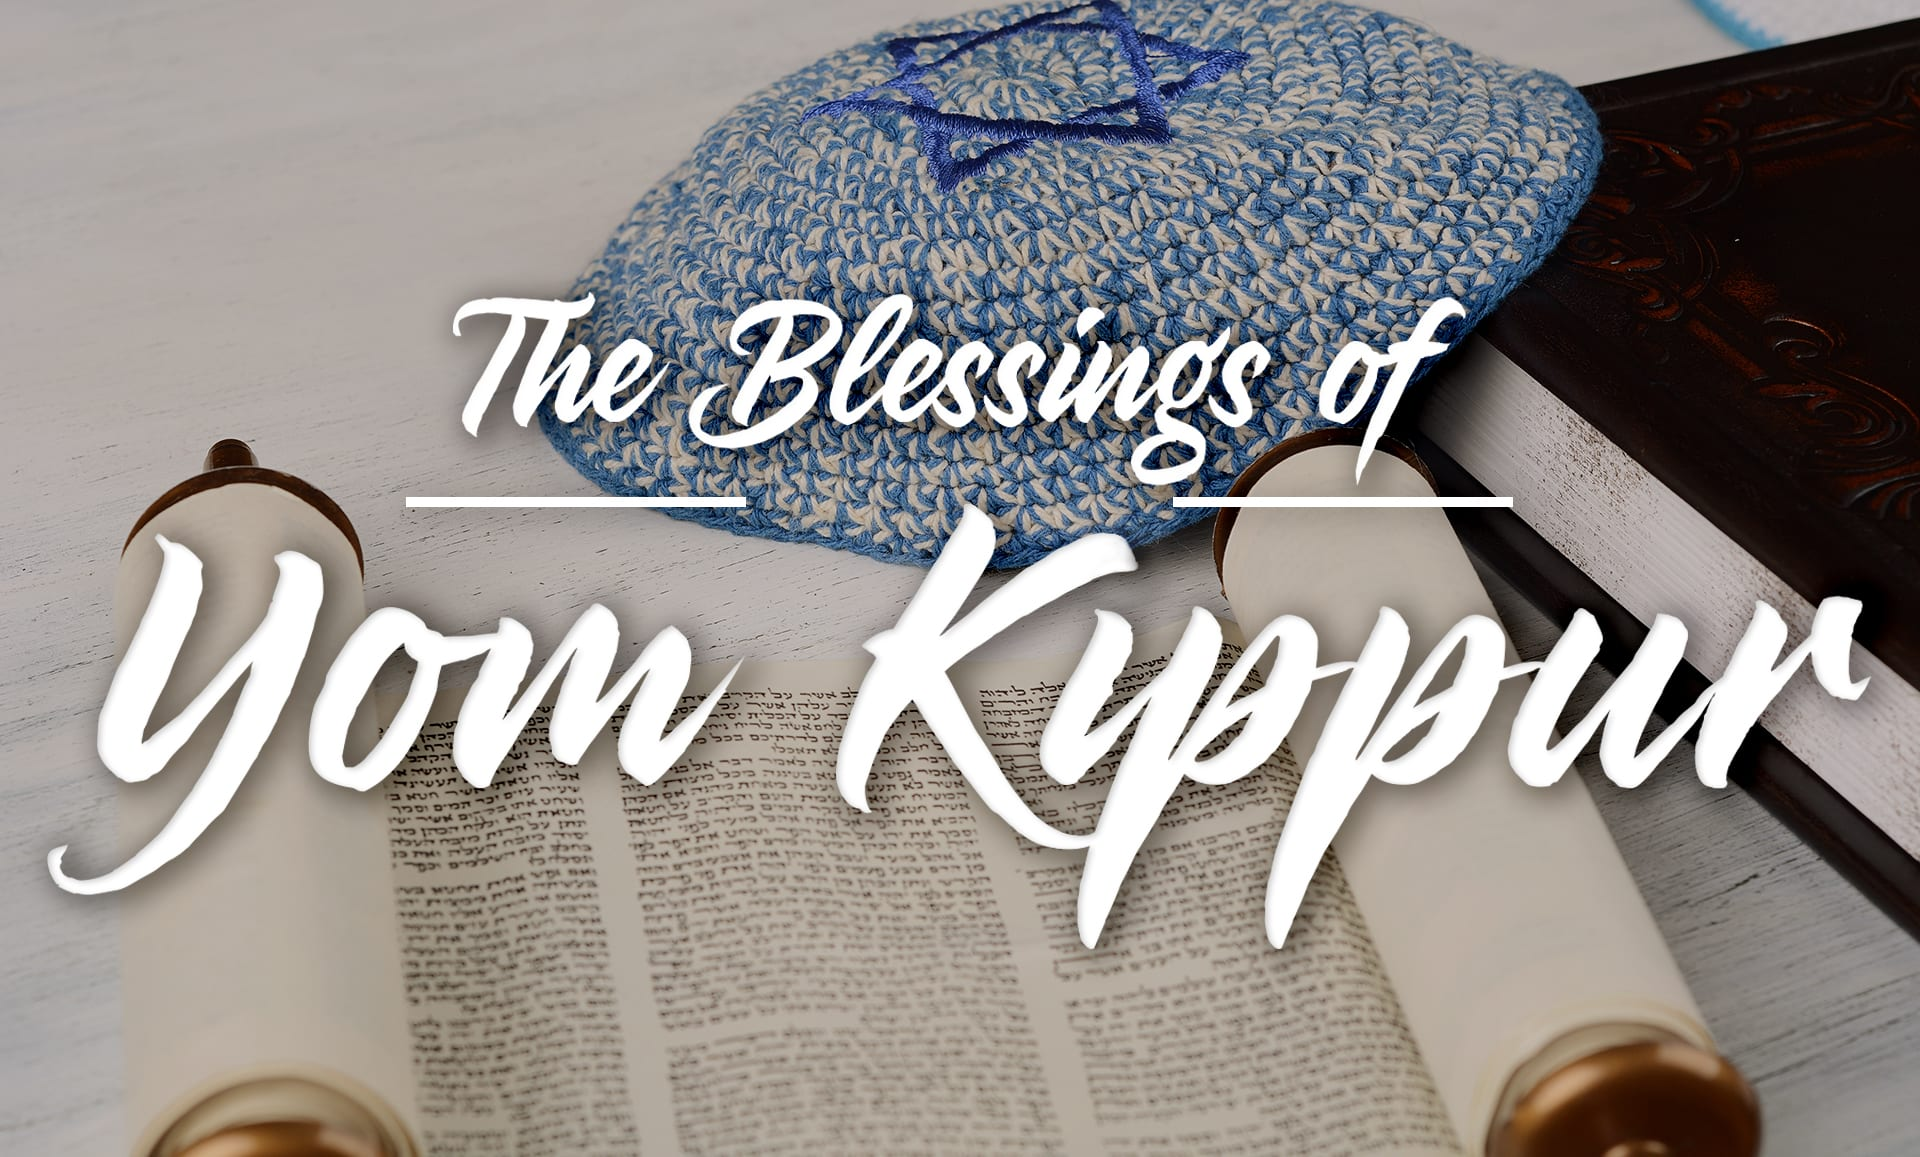 The Blessings of Yom Kippur